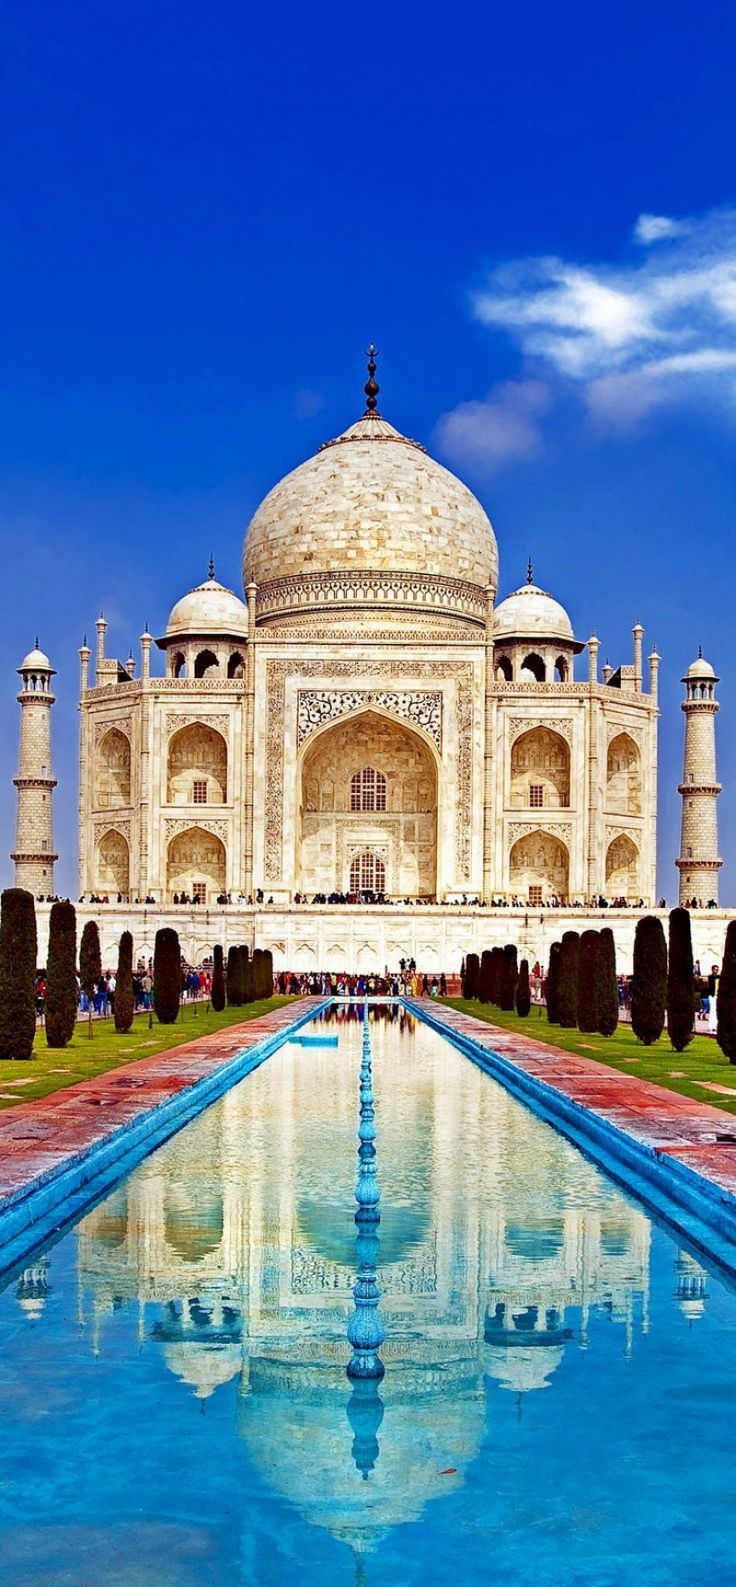 Taj Mahal, India  ---  For more UNESCO World Heritage Sites http://www.ecstasycoffee.com/look-beautiful-unesco-world-heritage-sites/ @@@